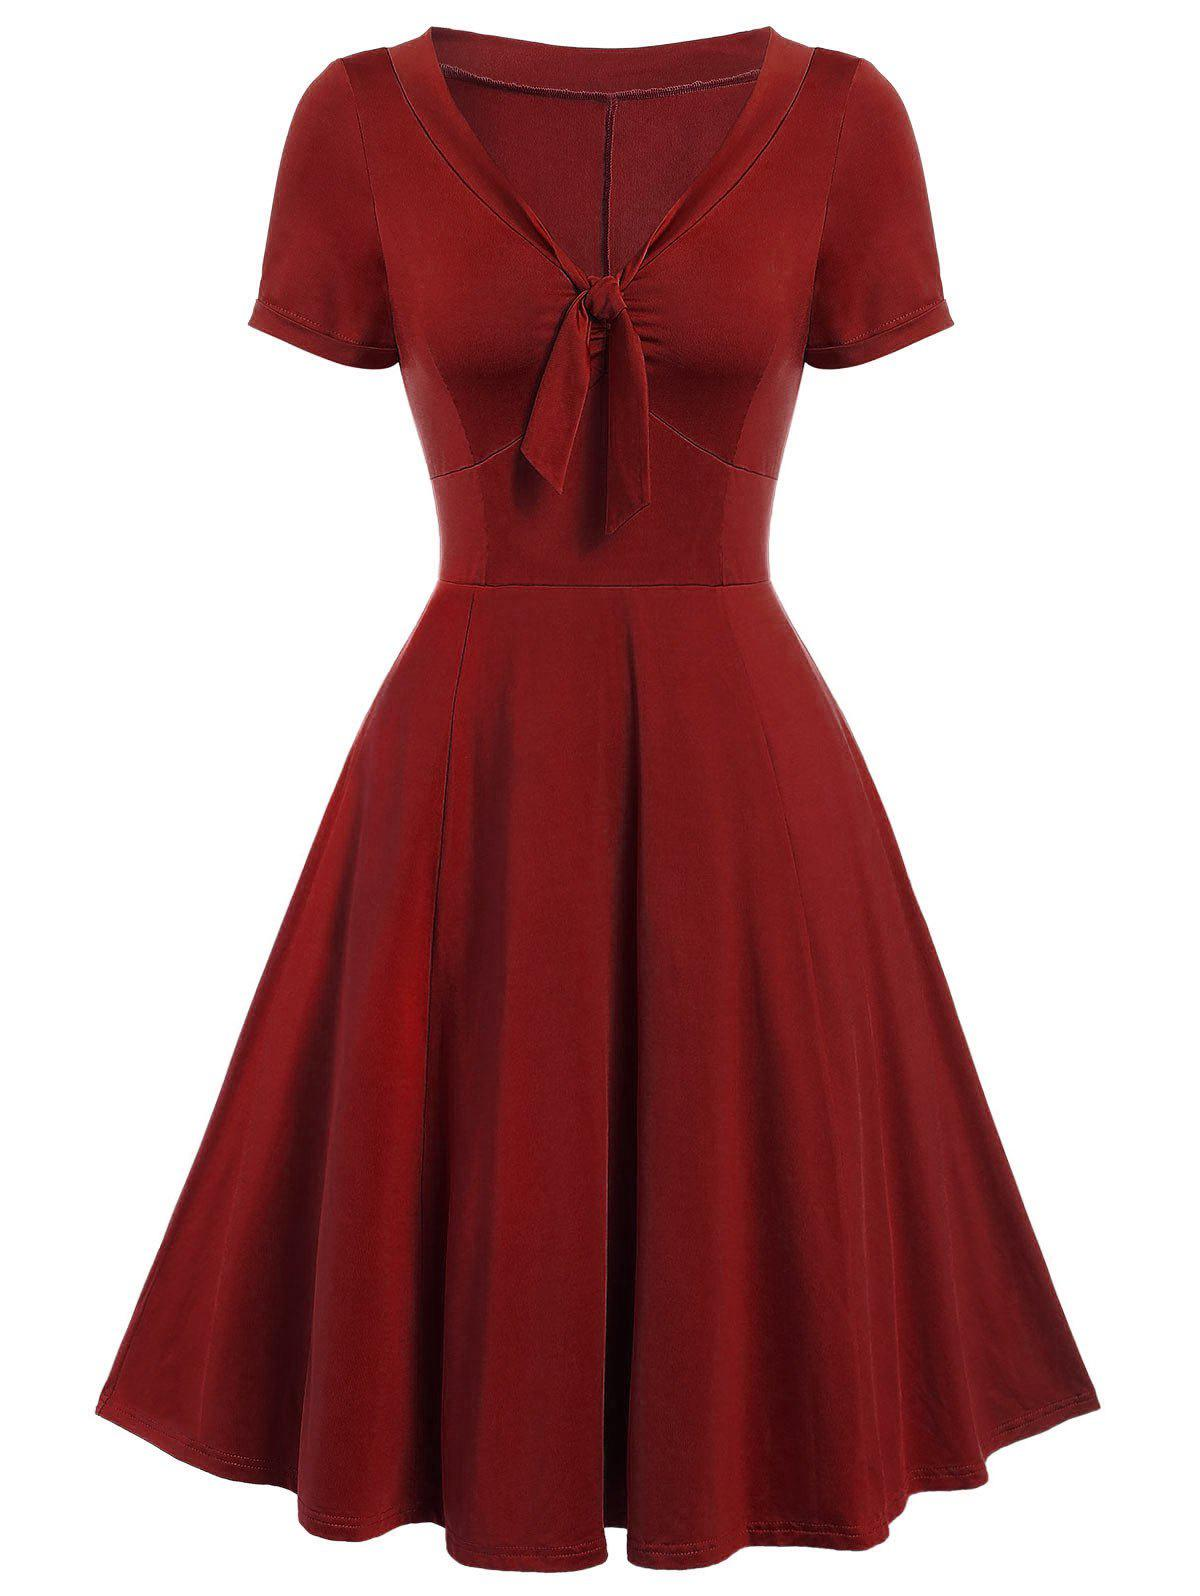 Vintage Bow Tie Pin Up Dress - RED WINE XL